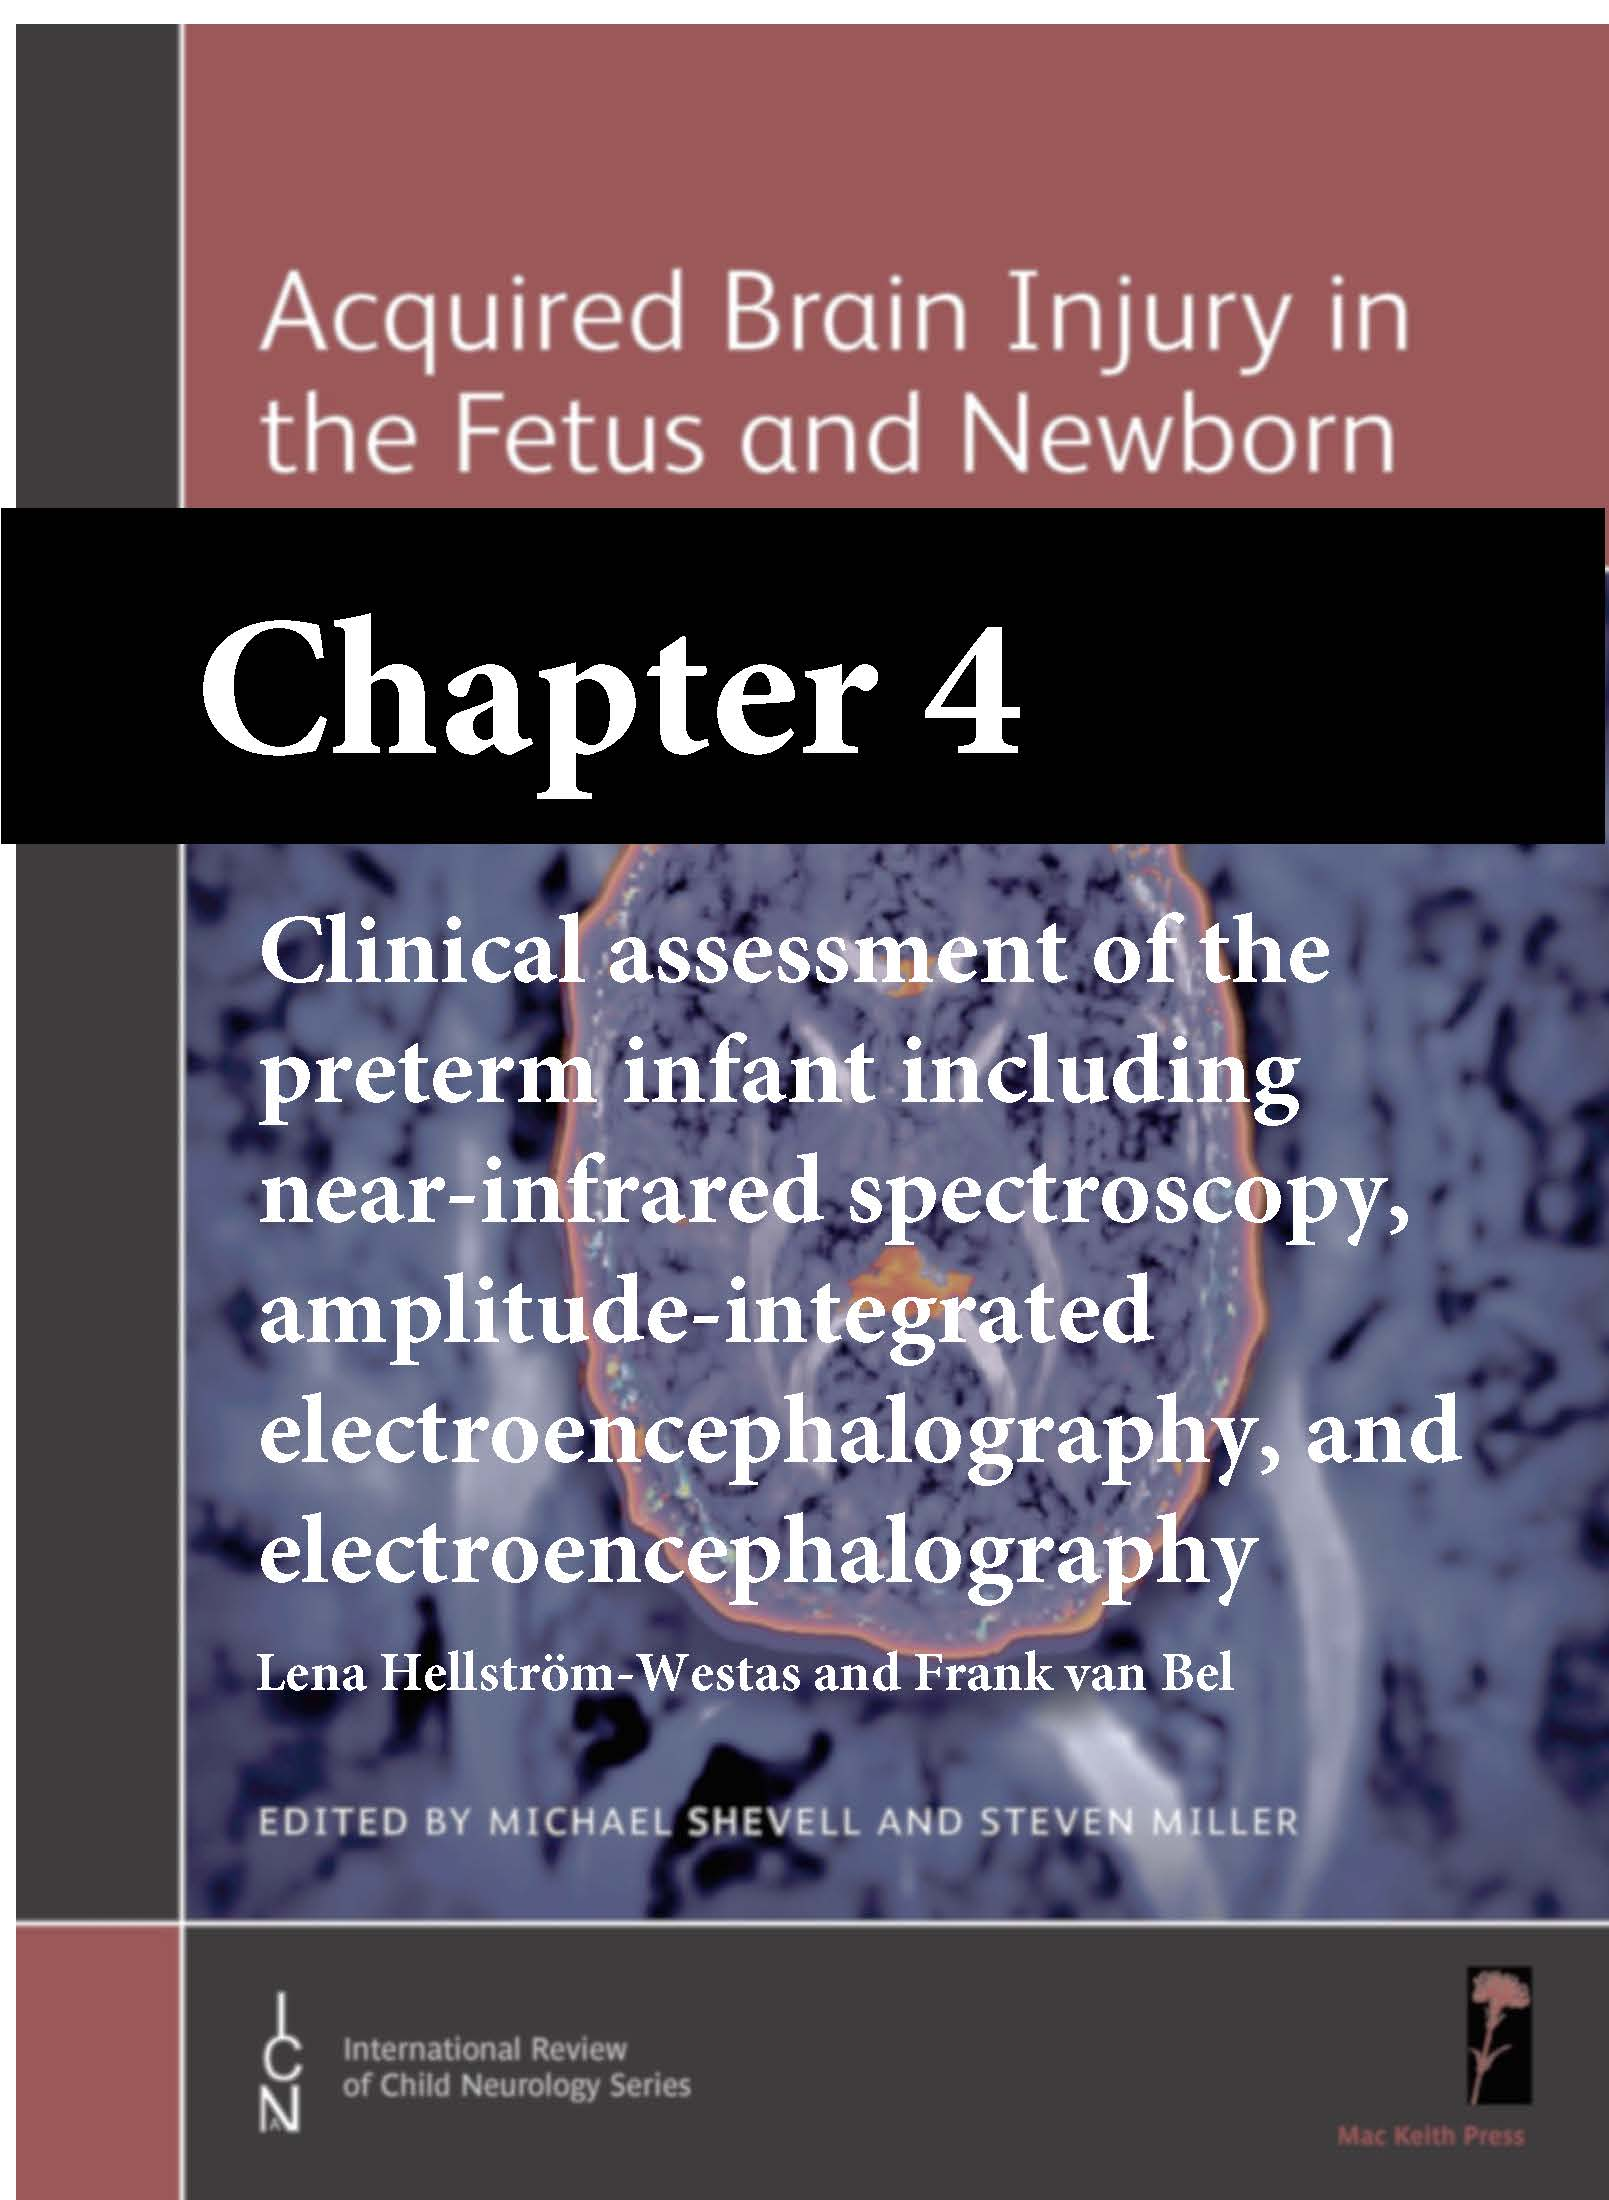 Acquired Brain Injury in the Fetus and Newborn, Shevell, Chapter 4 cover